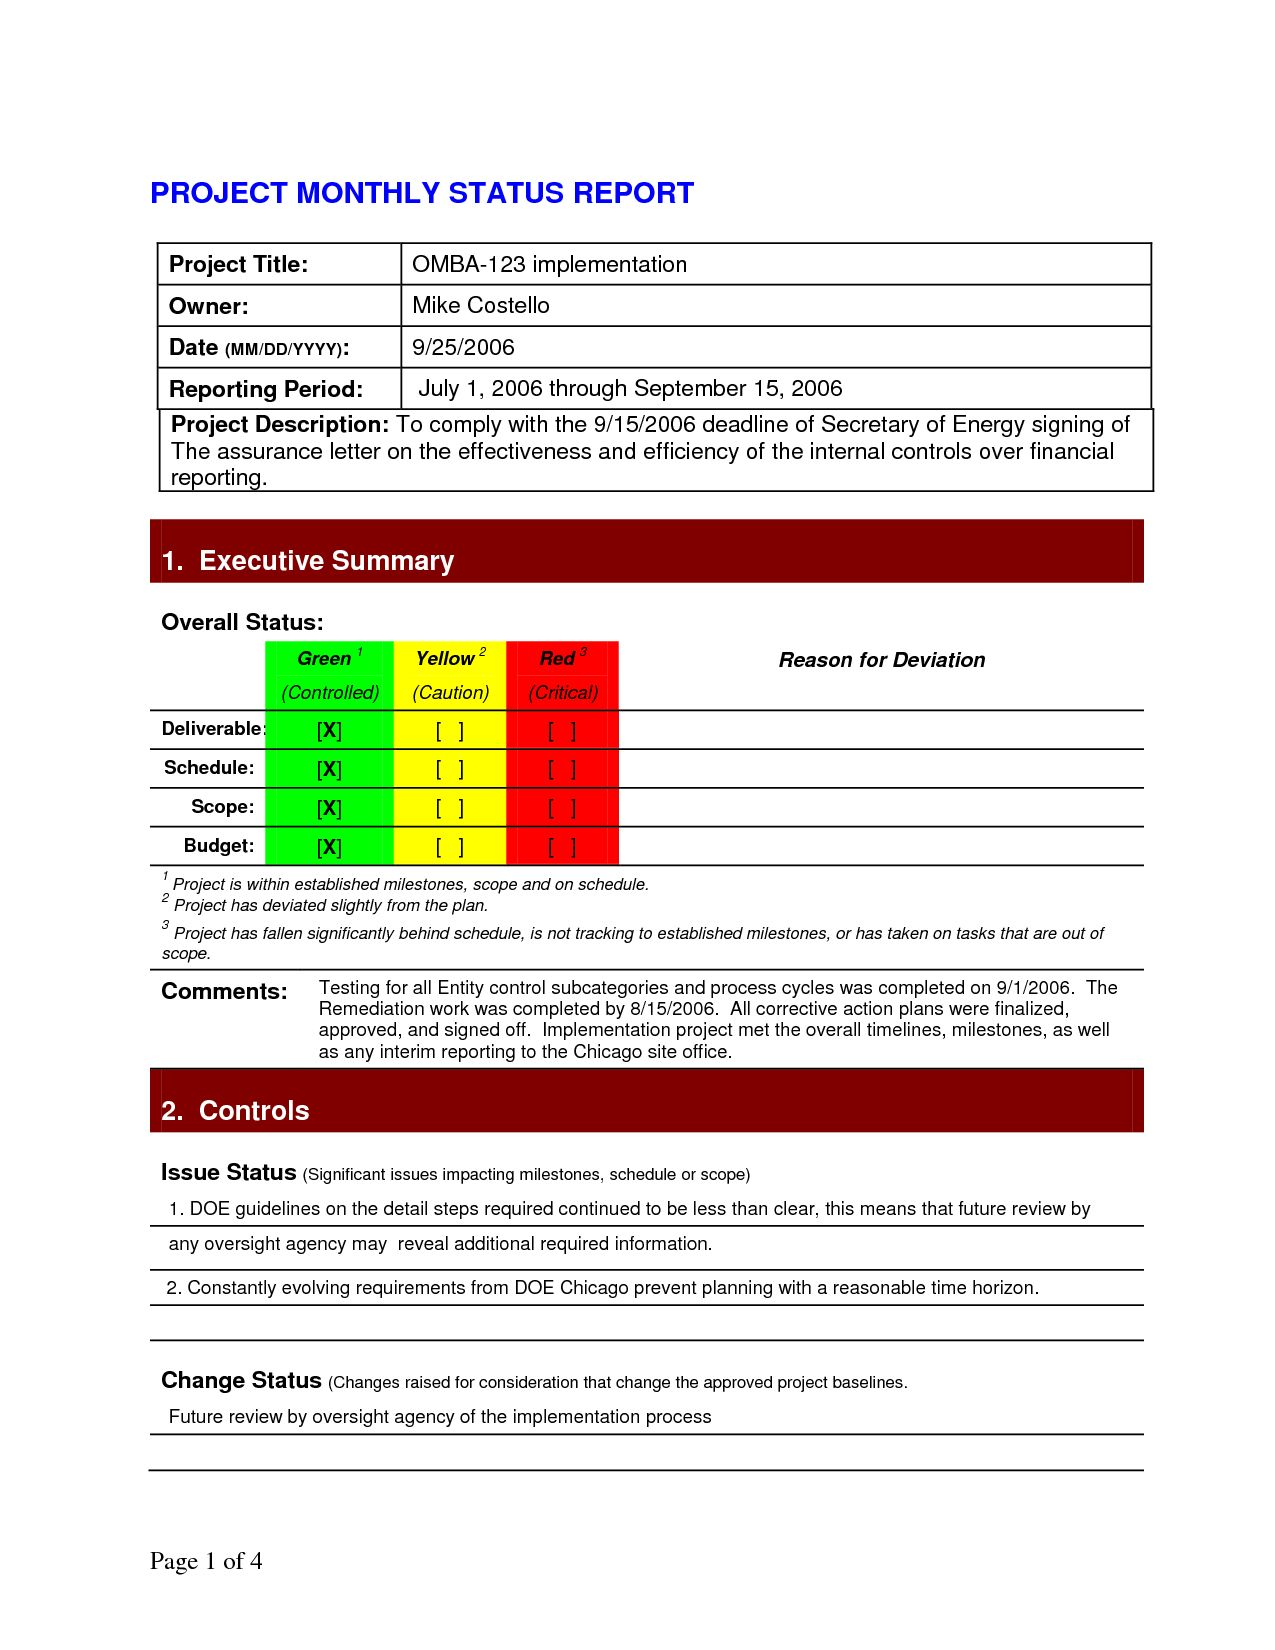 Project Status Report Template Weekly Sample Google Search Regarding Project Status Report Templ Project Status Report Progress Report Template Report Template Weekly project status report templates